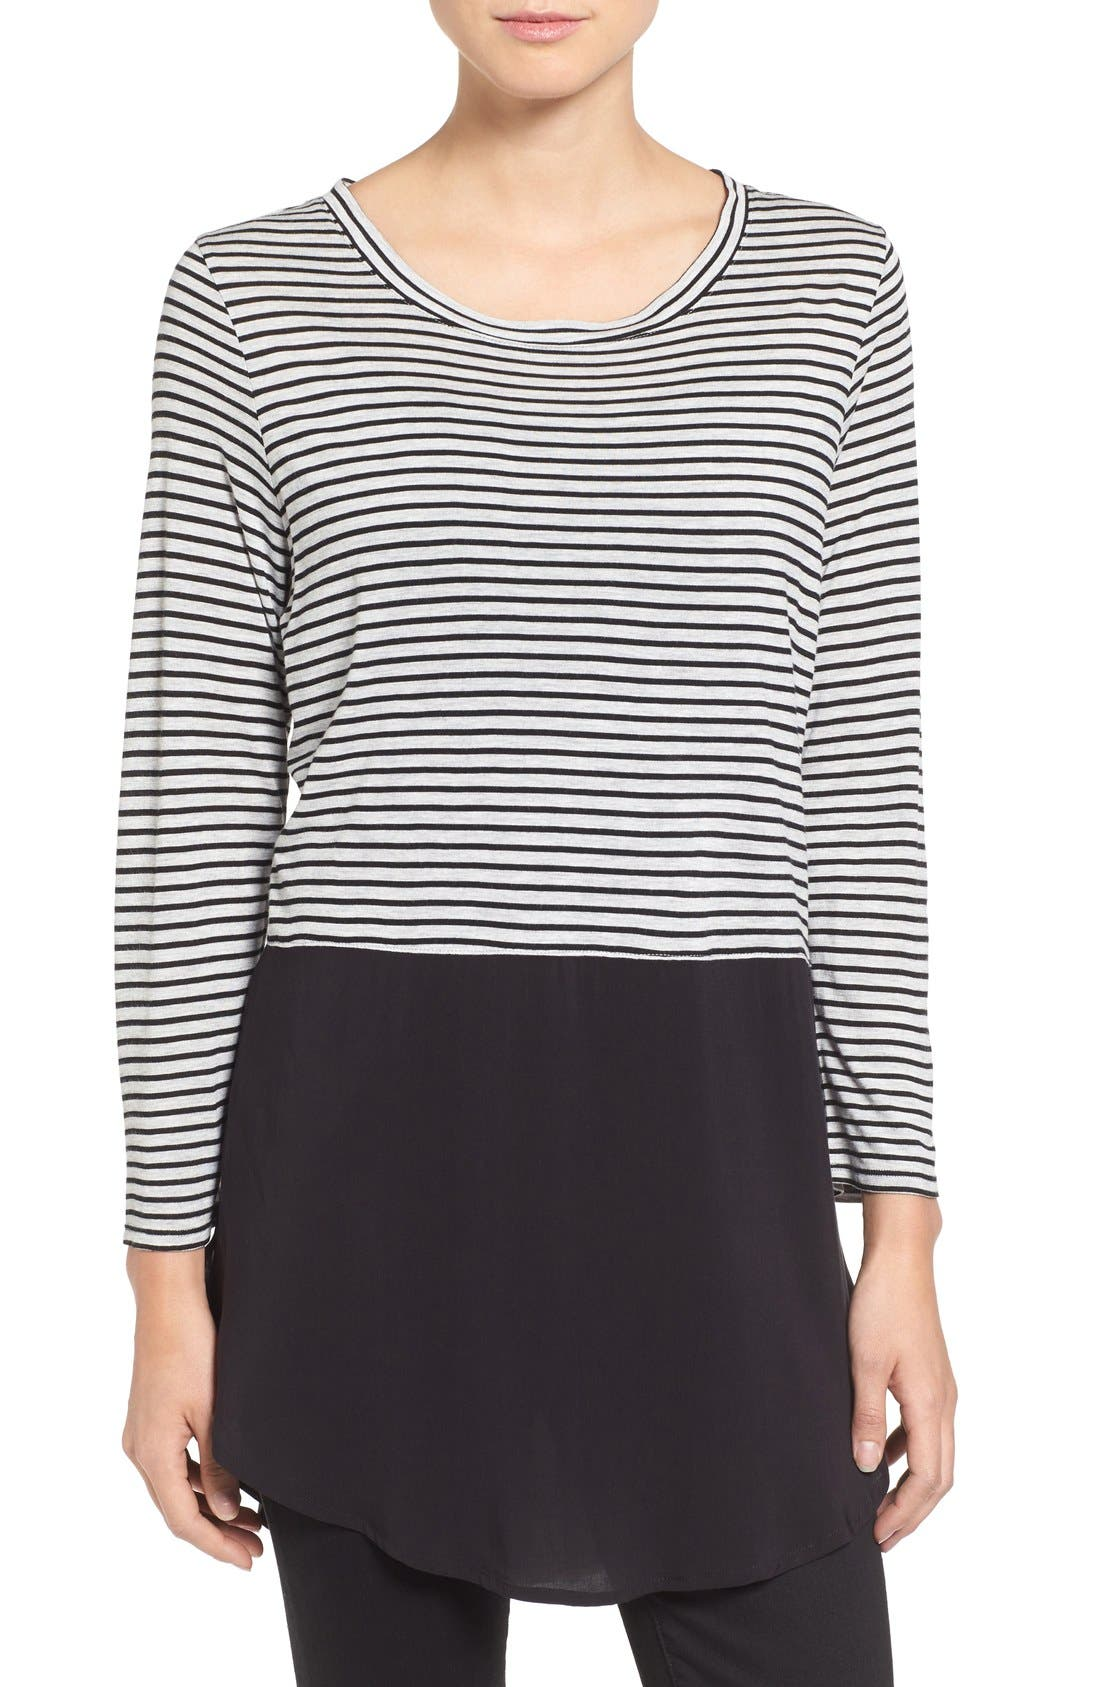 Main Image - Two by Vince Camuto 'Anchor Stripe' Mixed Media Tunic